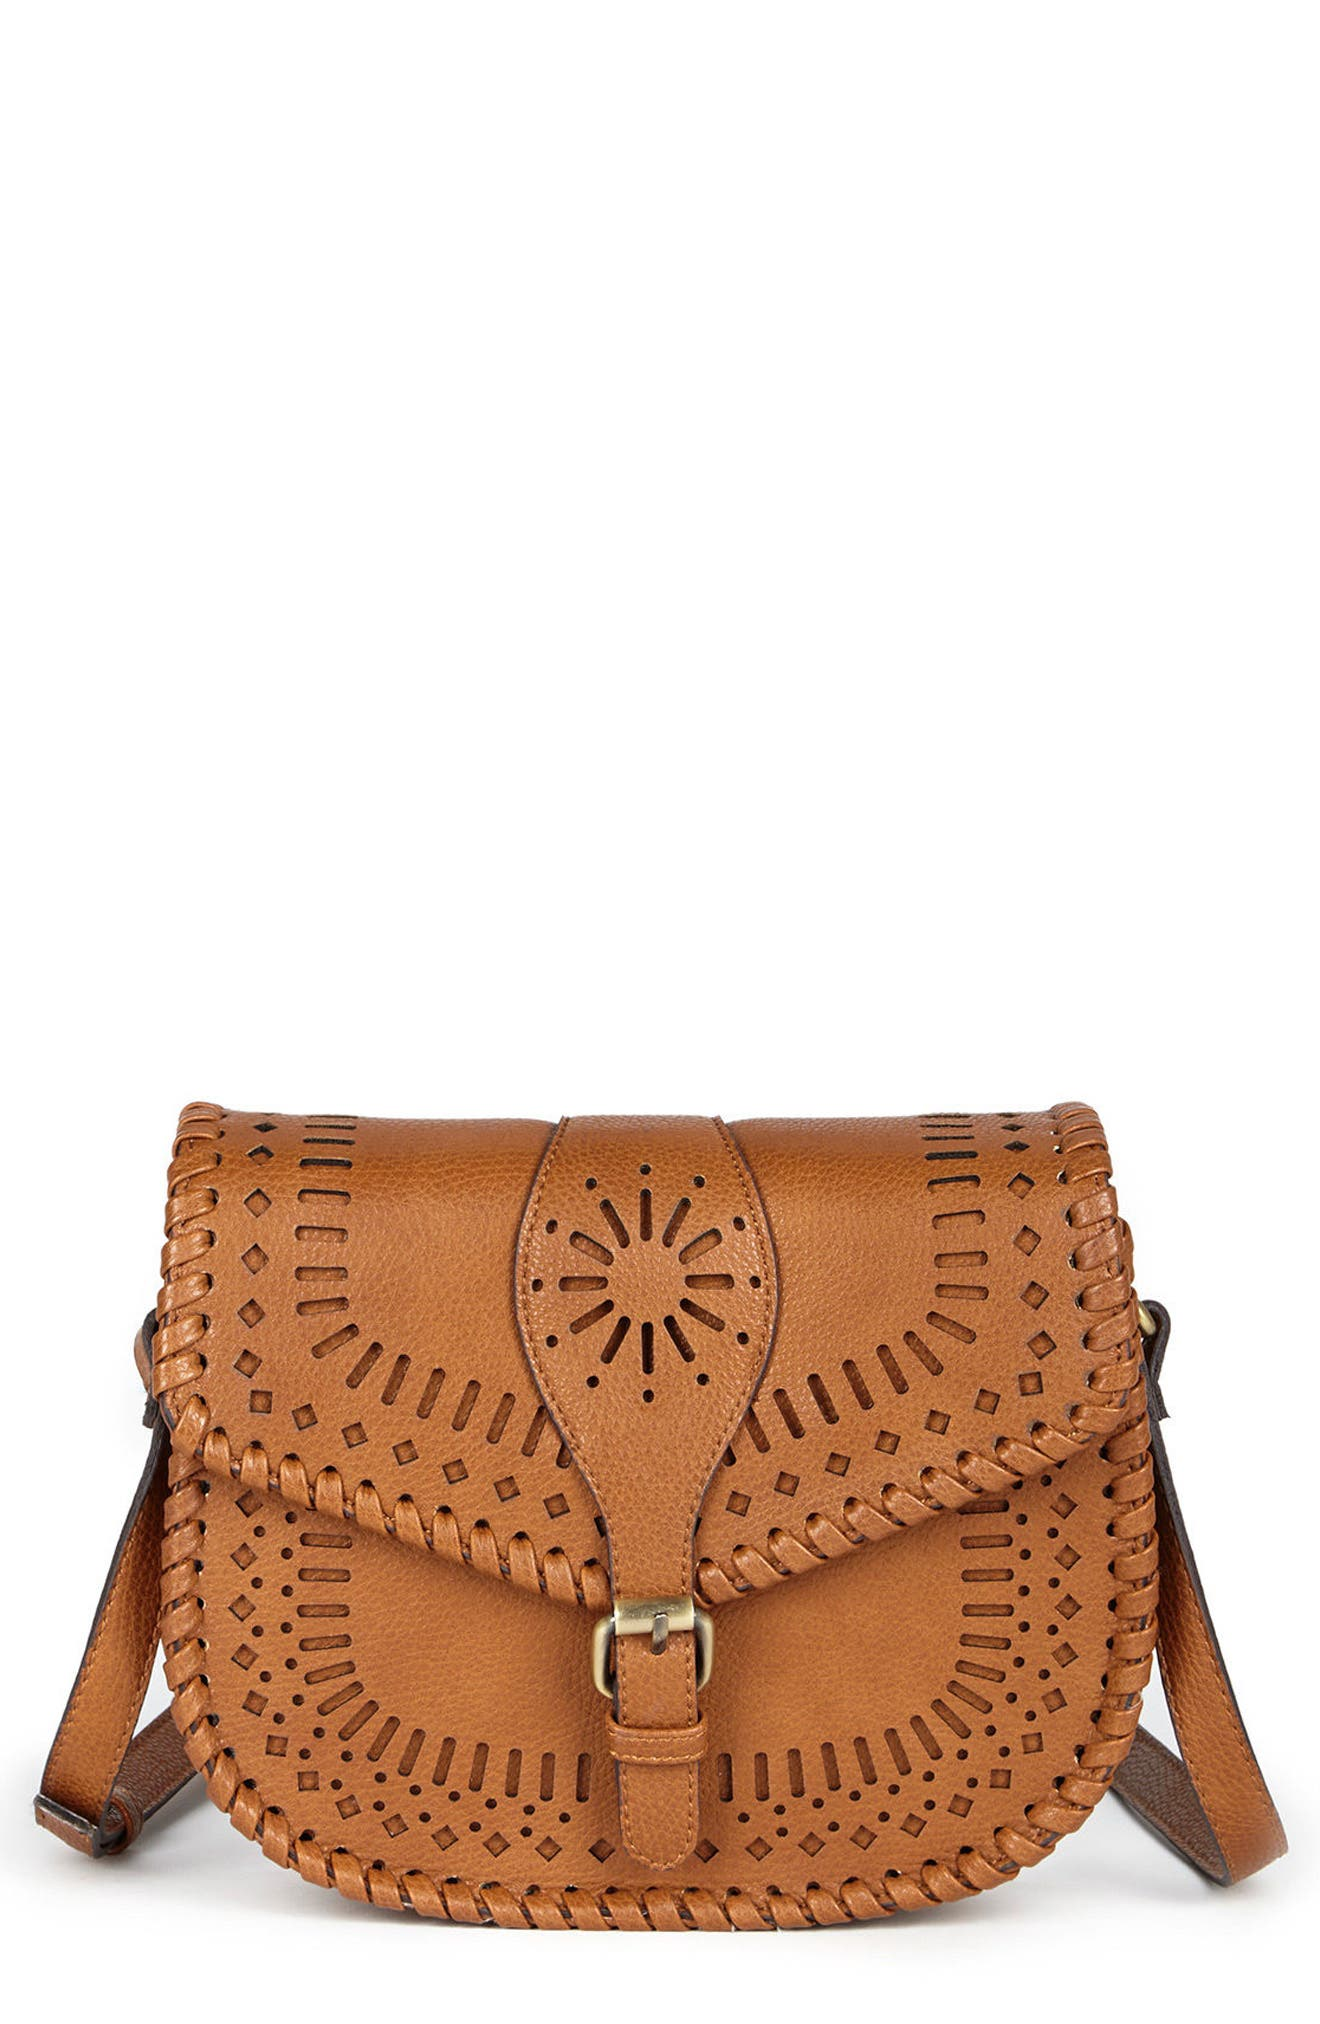 'Kianna' Perforated Faux Leather Crossbody Bag,                             Alternate thumbnail 5, color,